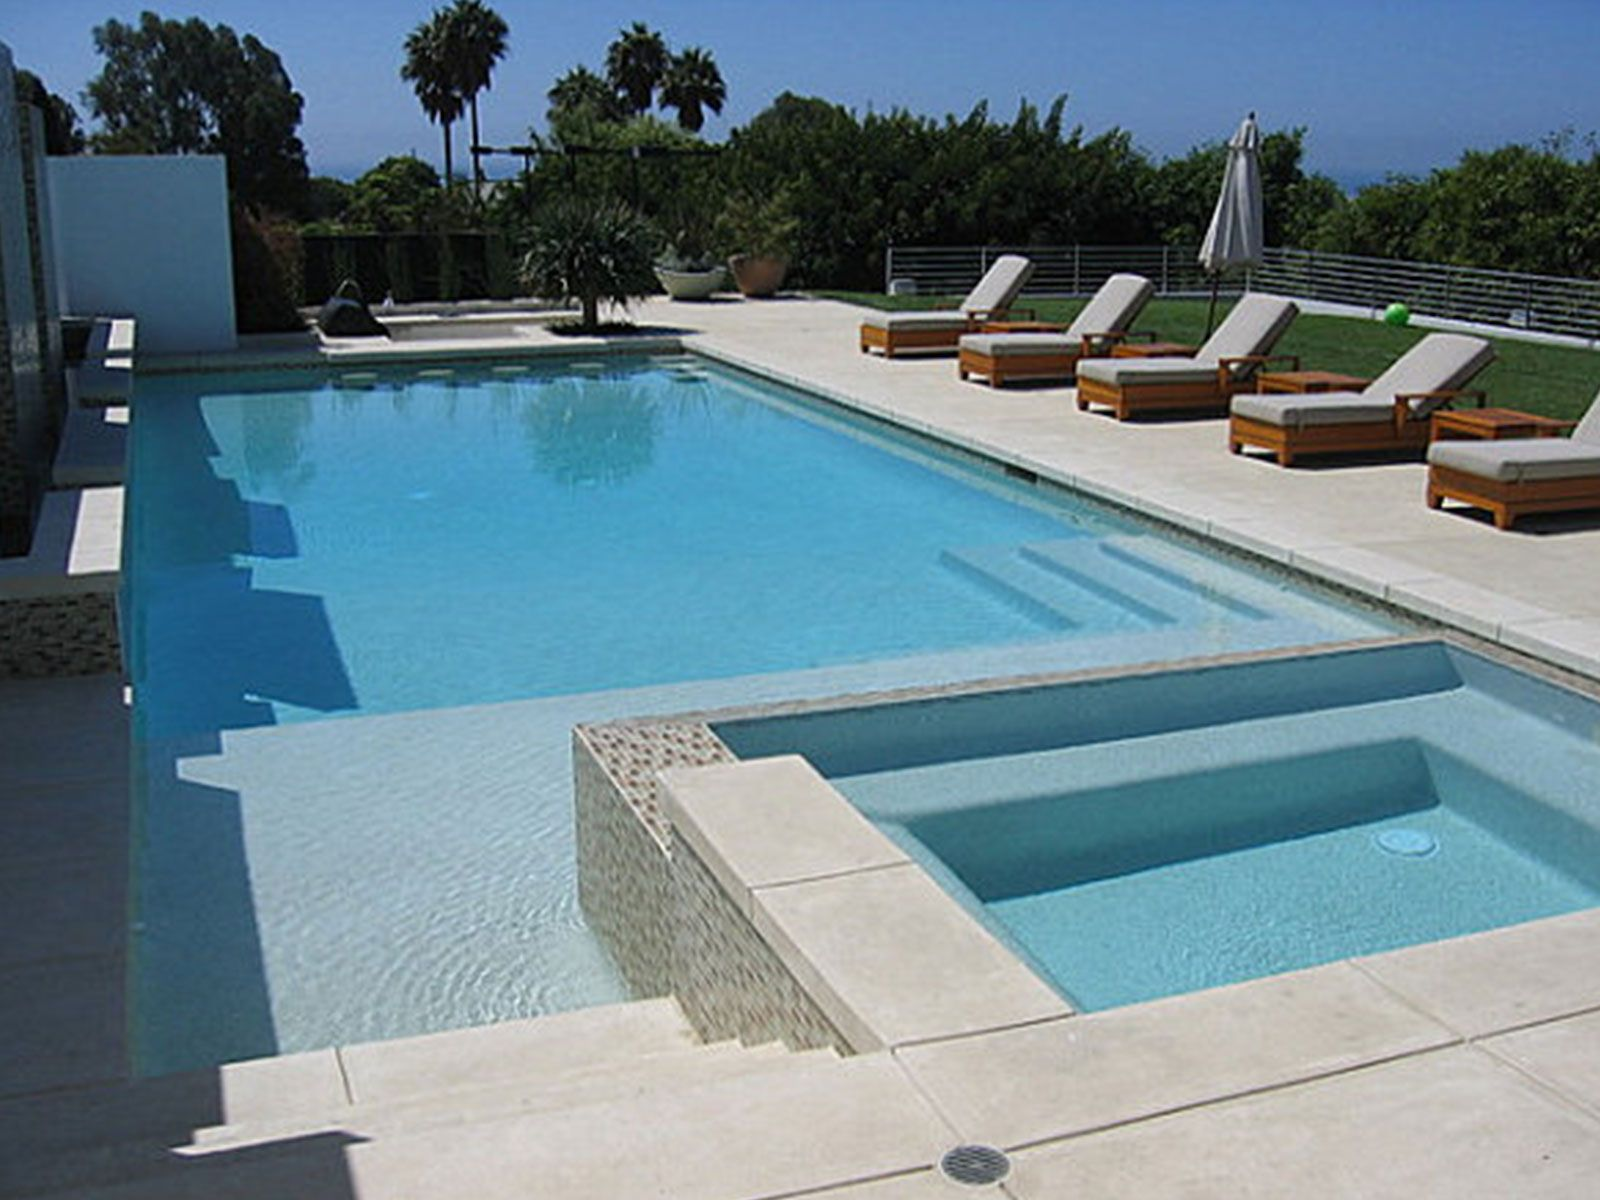 Simple swimming pool design image modern creative swimming - Swimming pool designs galleries ...